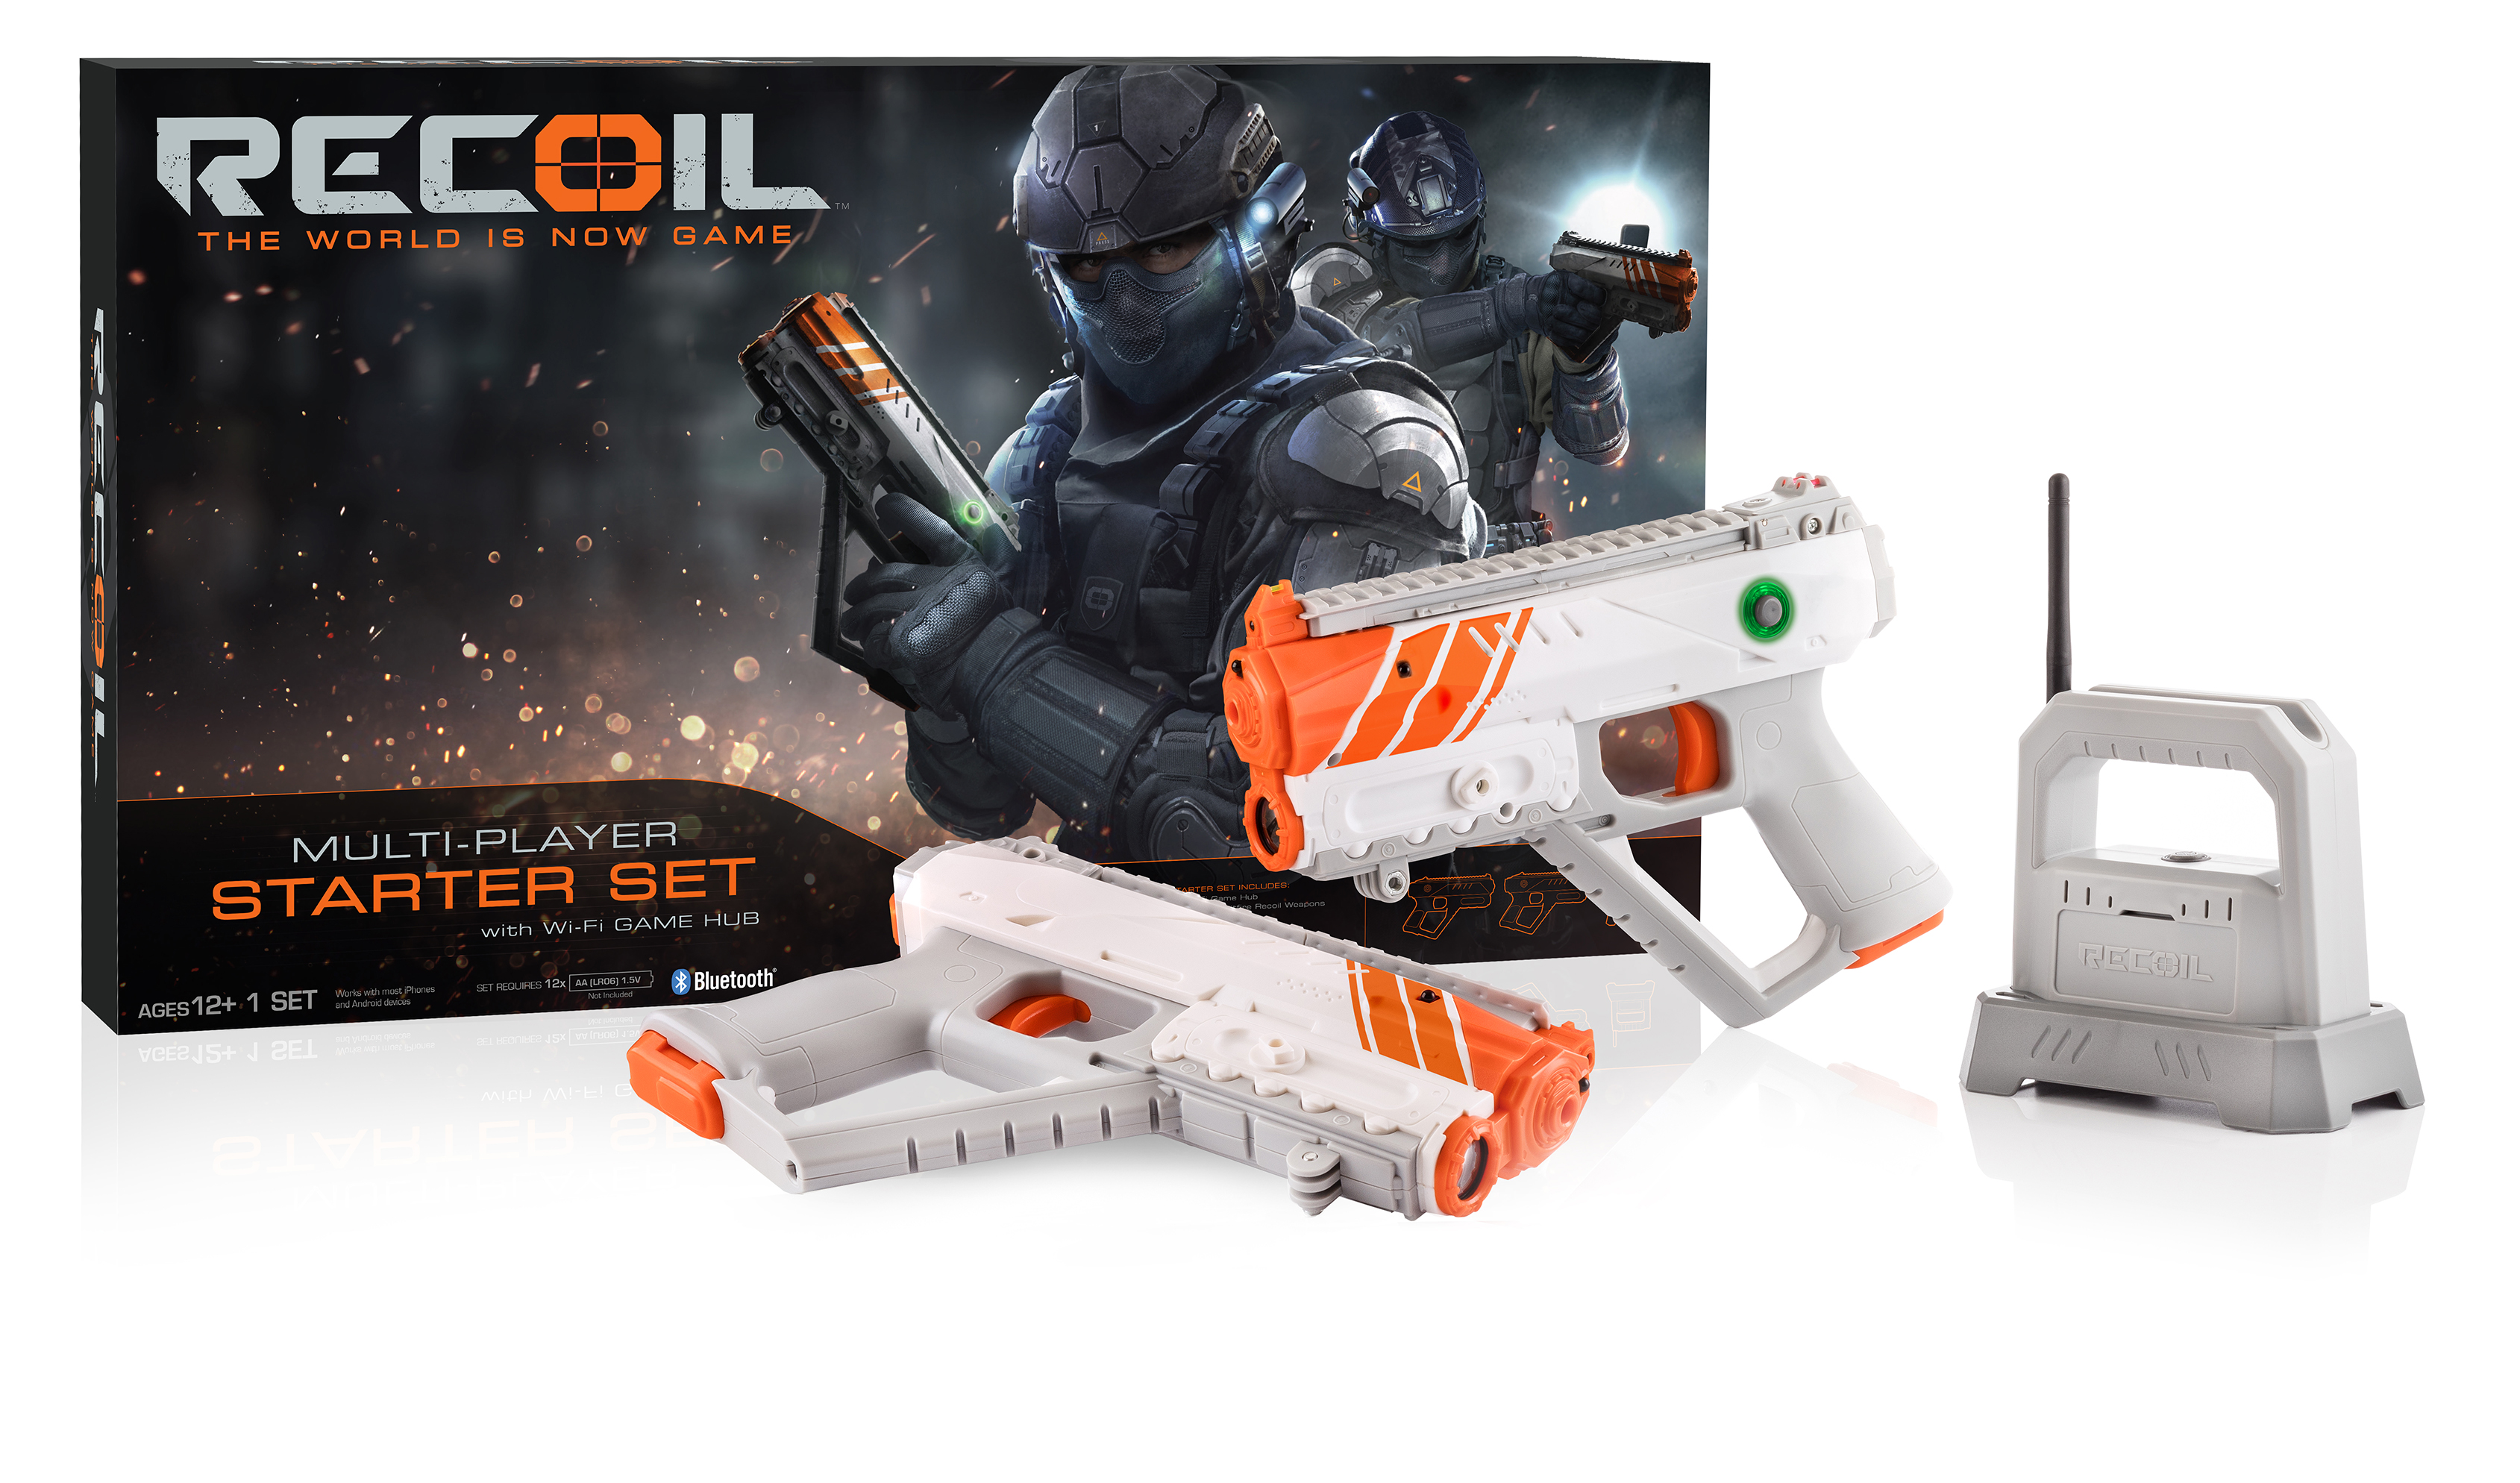 Recoil Laser Combat Two Player Starter Set